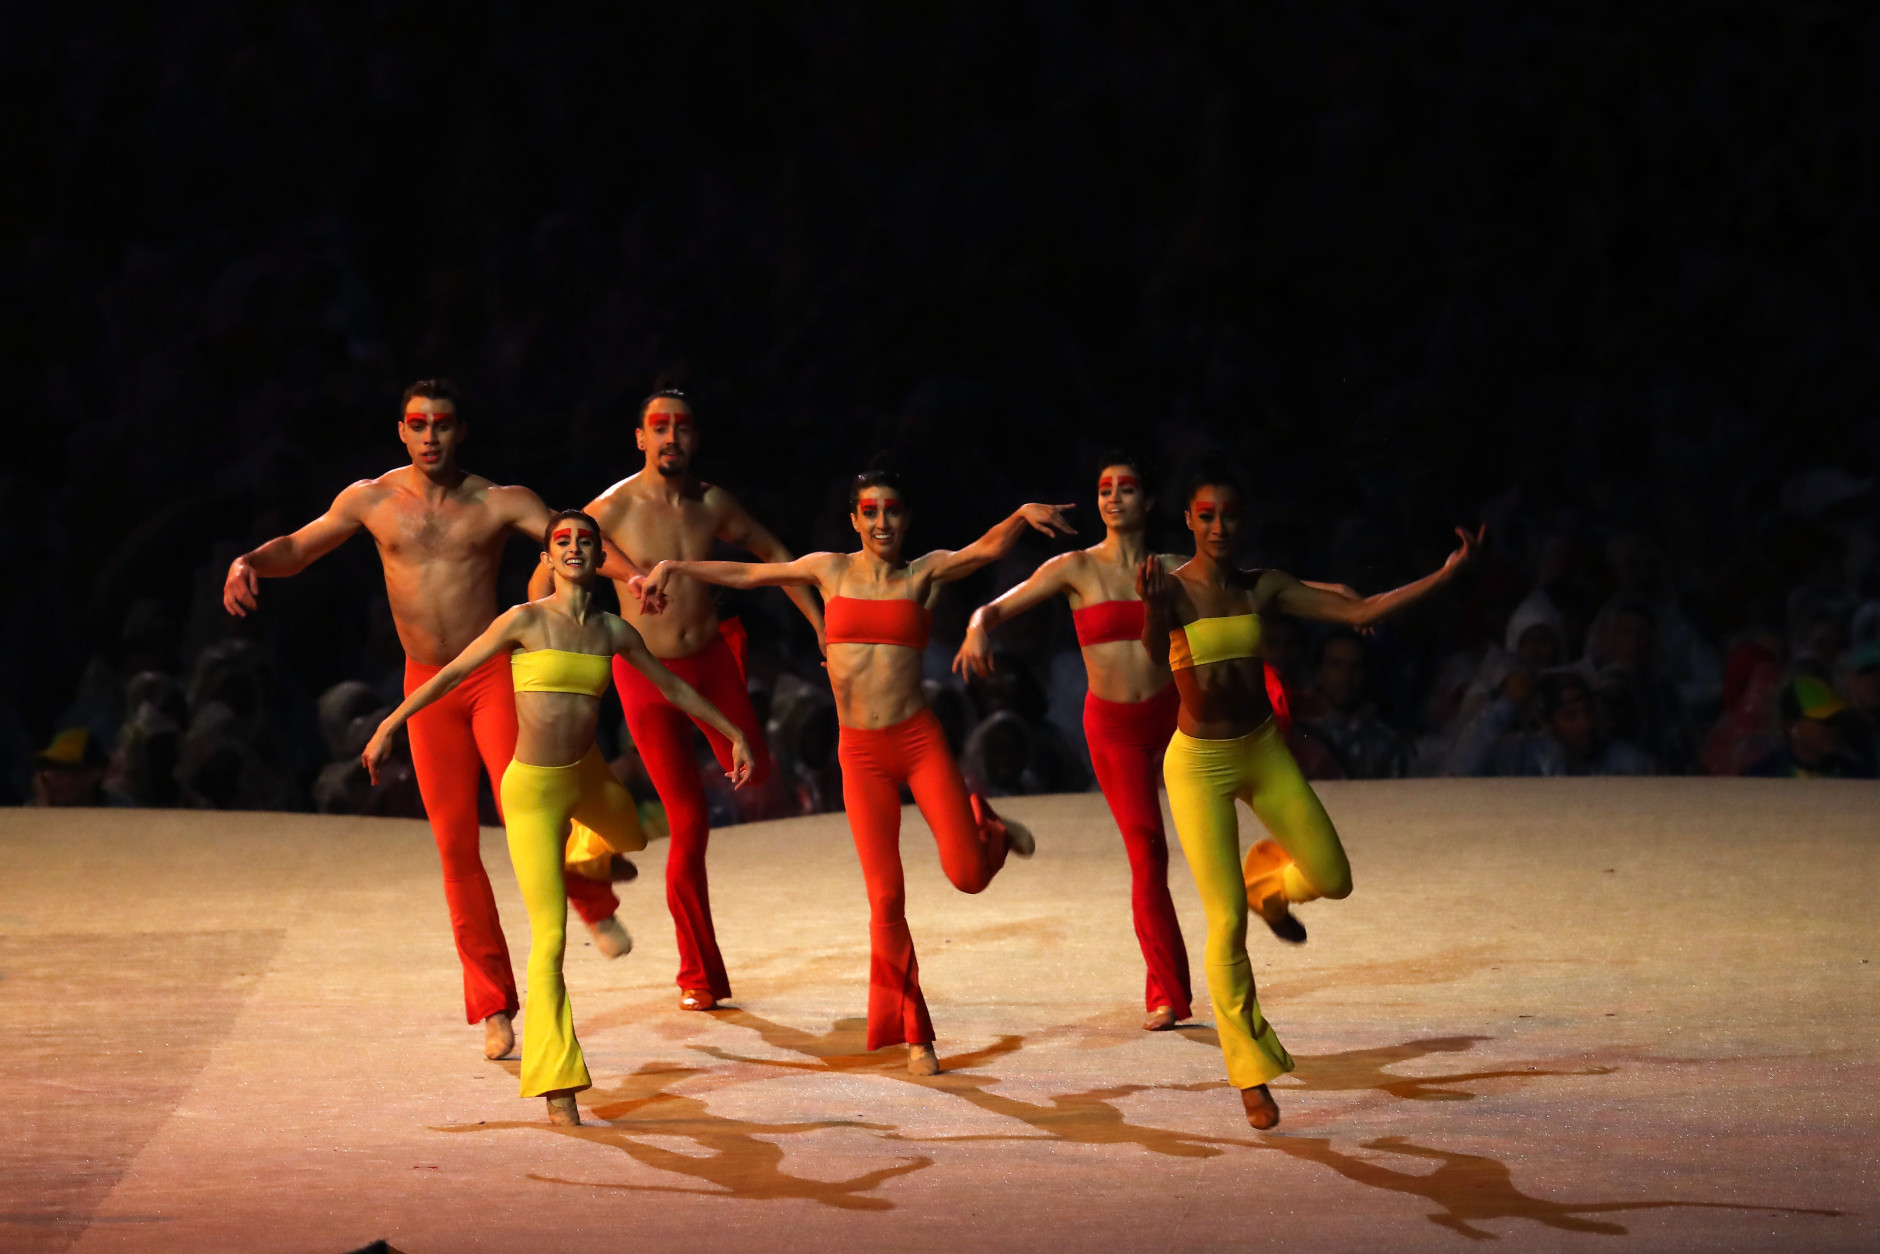 RIO DE JANEIRO, BRAZIL - AUGUST 21:  Contemporary dance group Grupo Corpo perform a segment of their show Parabelo in the 'Bringing Clay to Life' segment during the Closing Ceremony on Day 16 of the Rio 2016 Olympic Games at Maracana Stadium on August 21, 2016 in Rio de Janeiro, Brazil.  (Photo by Alexander Hassenstein/Getty Images)